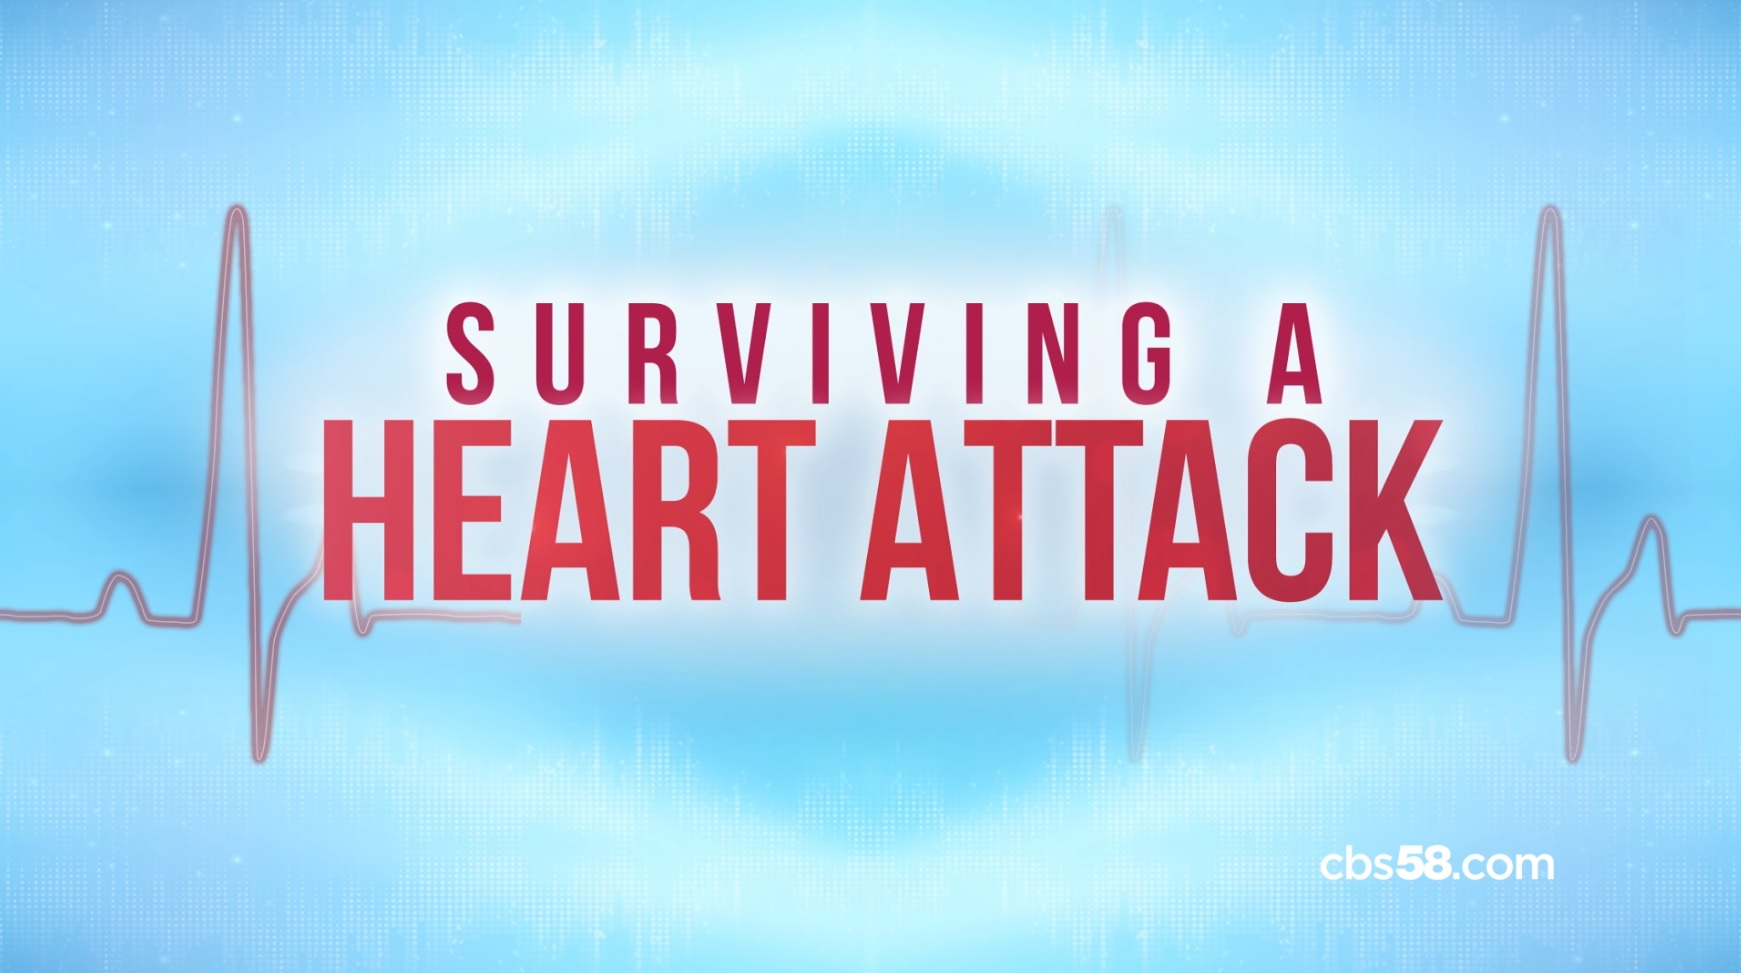 CBS 58 Special Report: Surviving a Heart Attack tonight @10pm